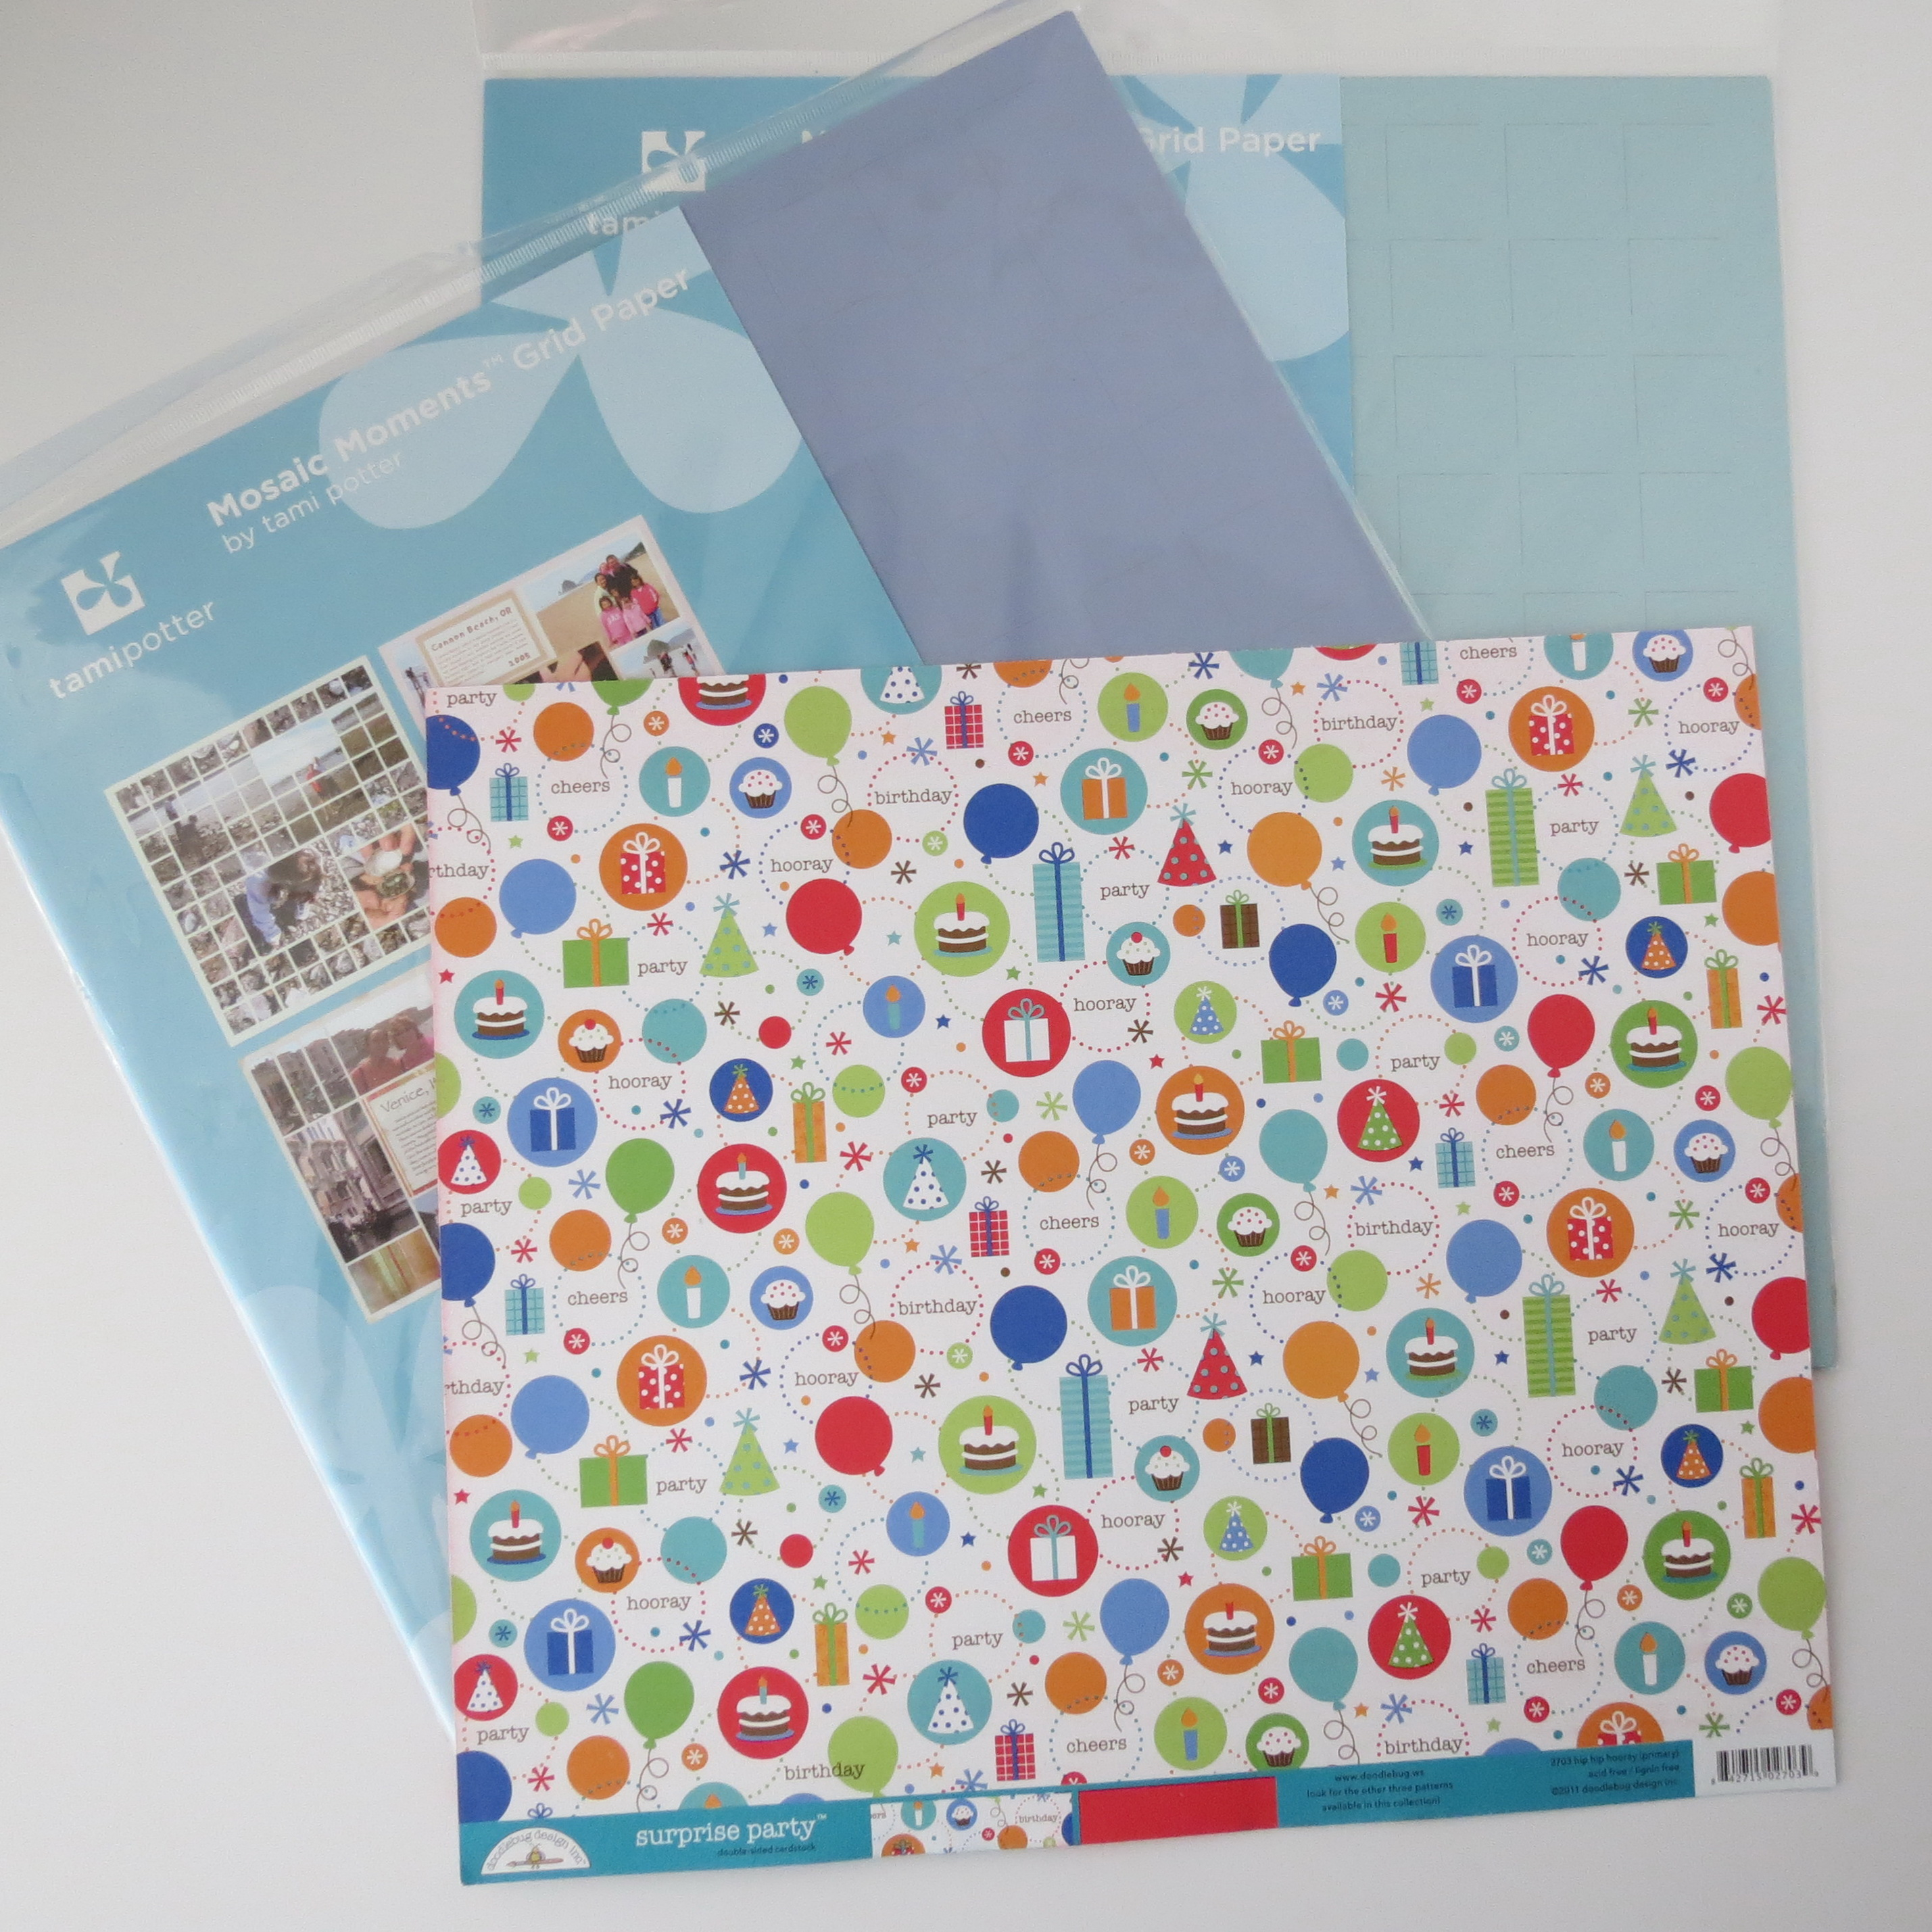 How to make scrapbook for birthday - Birthday Scrapbook Pages Make A Choice And Add A Grid